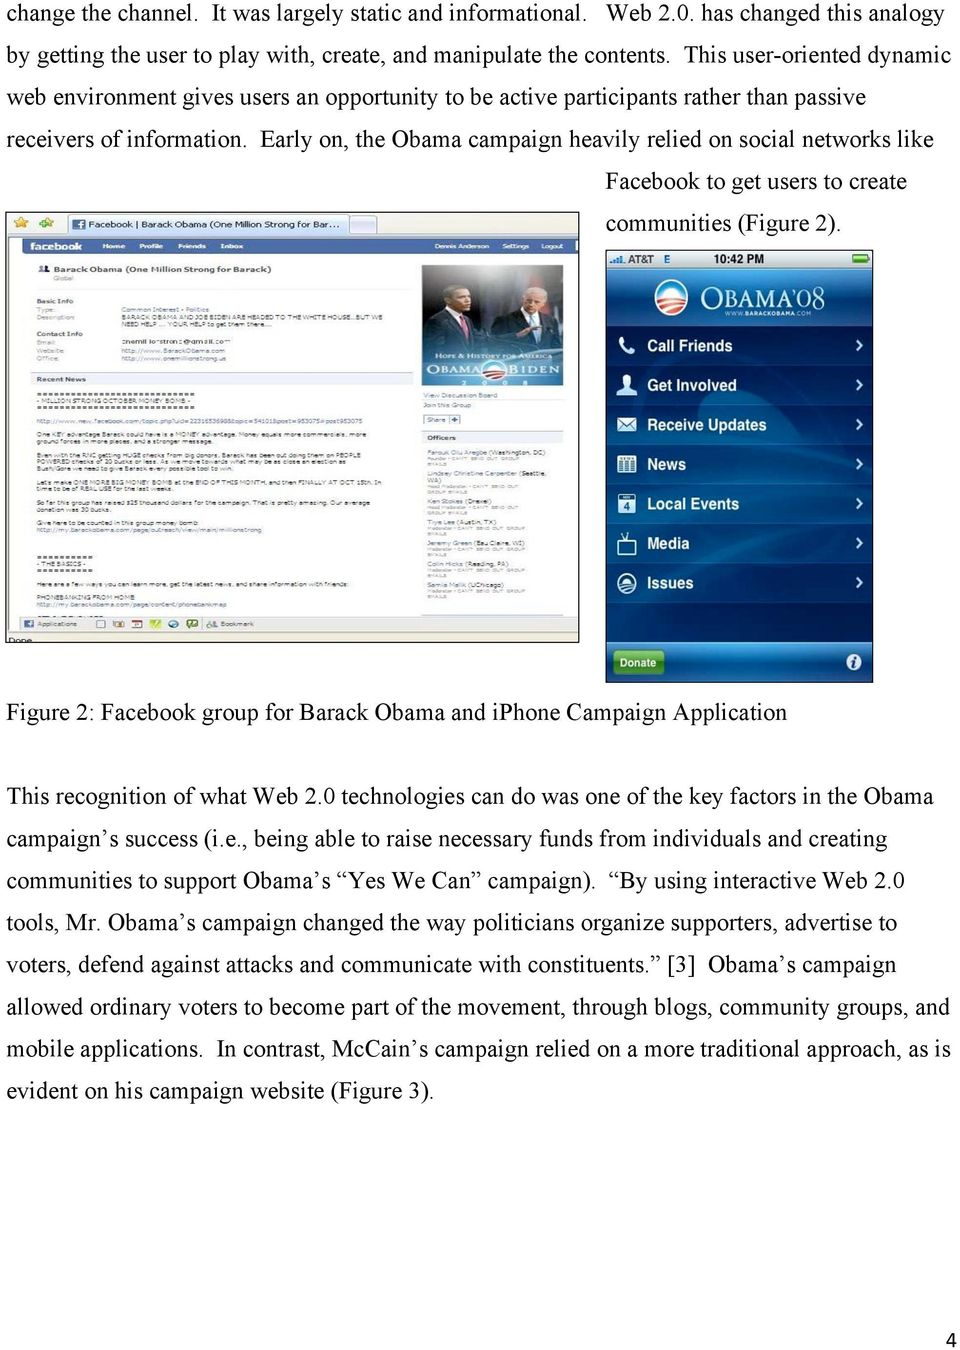 Early on, the Obama campaign heavily relied on social networks like Facebook to get users to create communities (Figure 2).